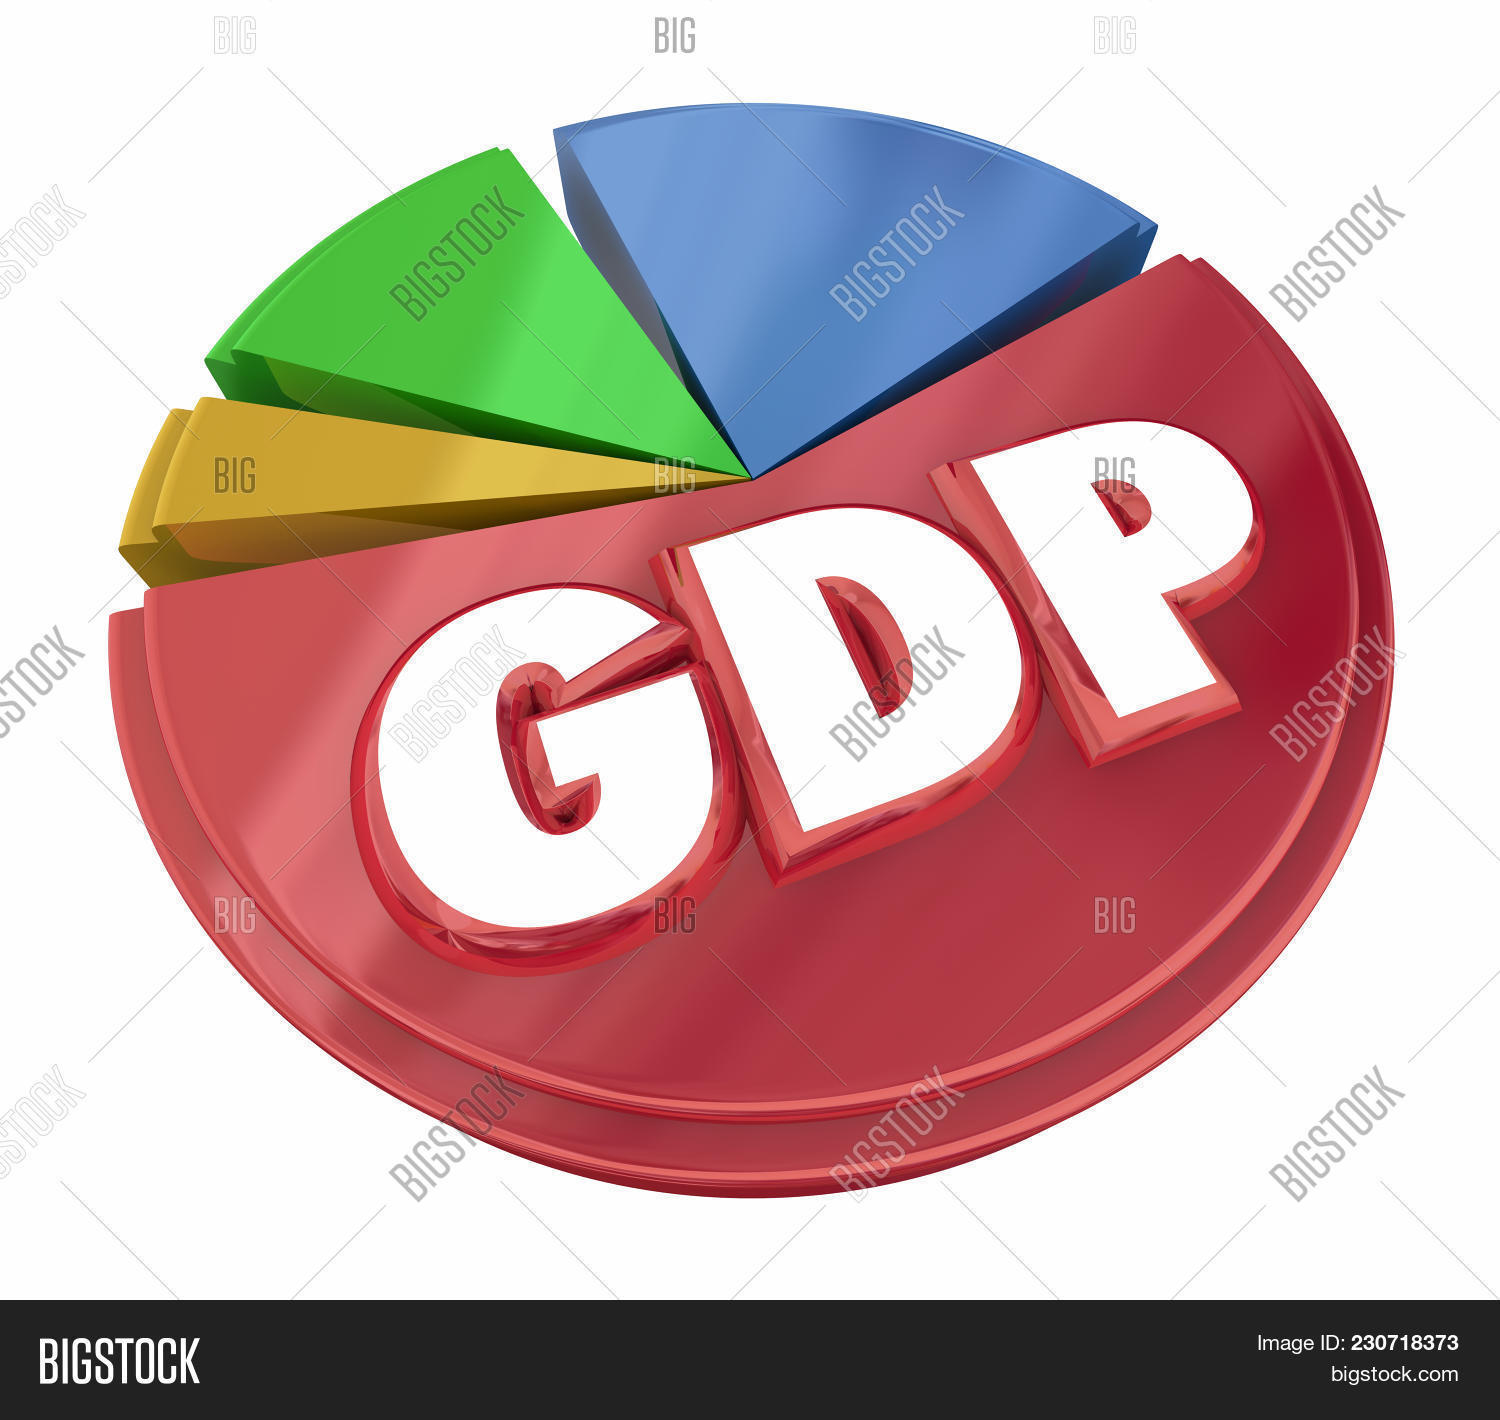 Gdp Gross Domestic Image Photo Free Trial Bigstock